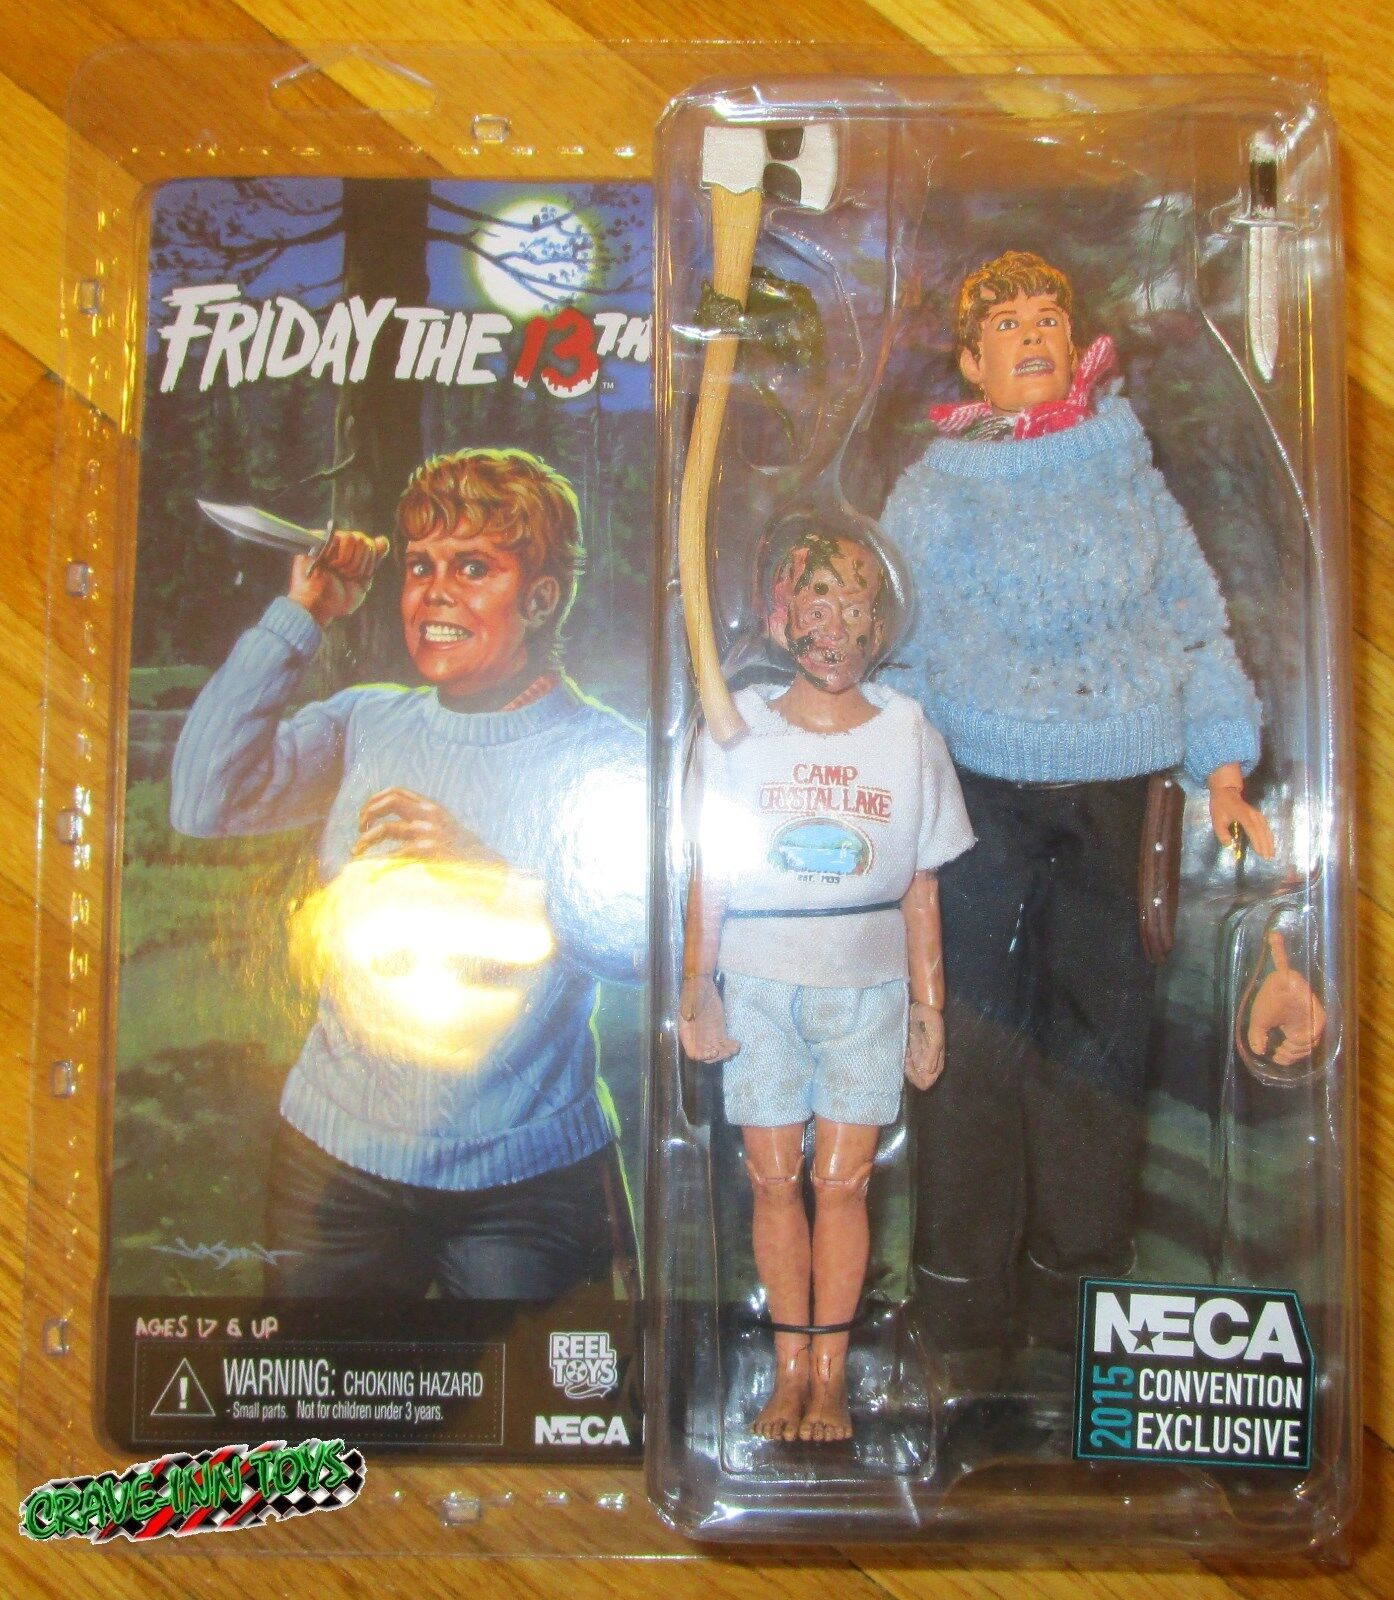 suministro directo de los fabricantes Sdcc 2018 Neca Friday Friday Friday The 13th Pamela Voorhees jóvenes Jason 35th Anniv Figura Set  deportes calientes